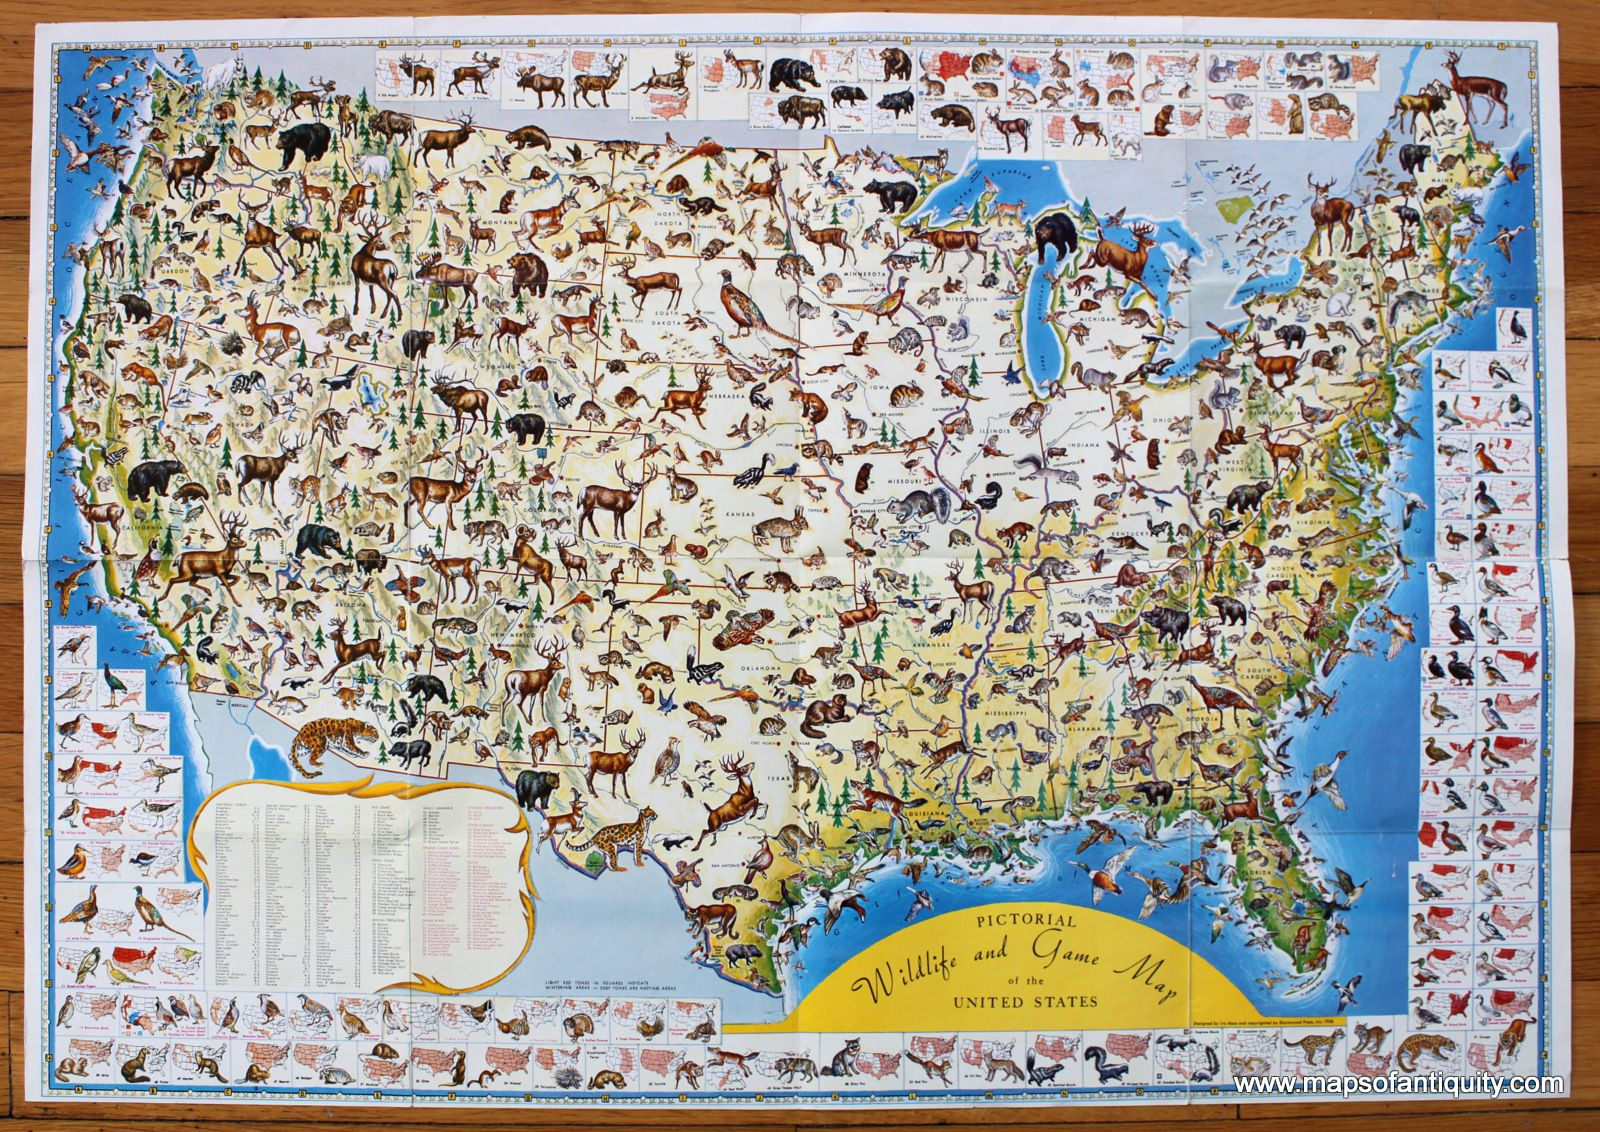 Antique 1956 Pictorial Map of the Wildlife and Game of the United